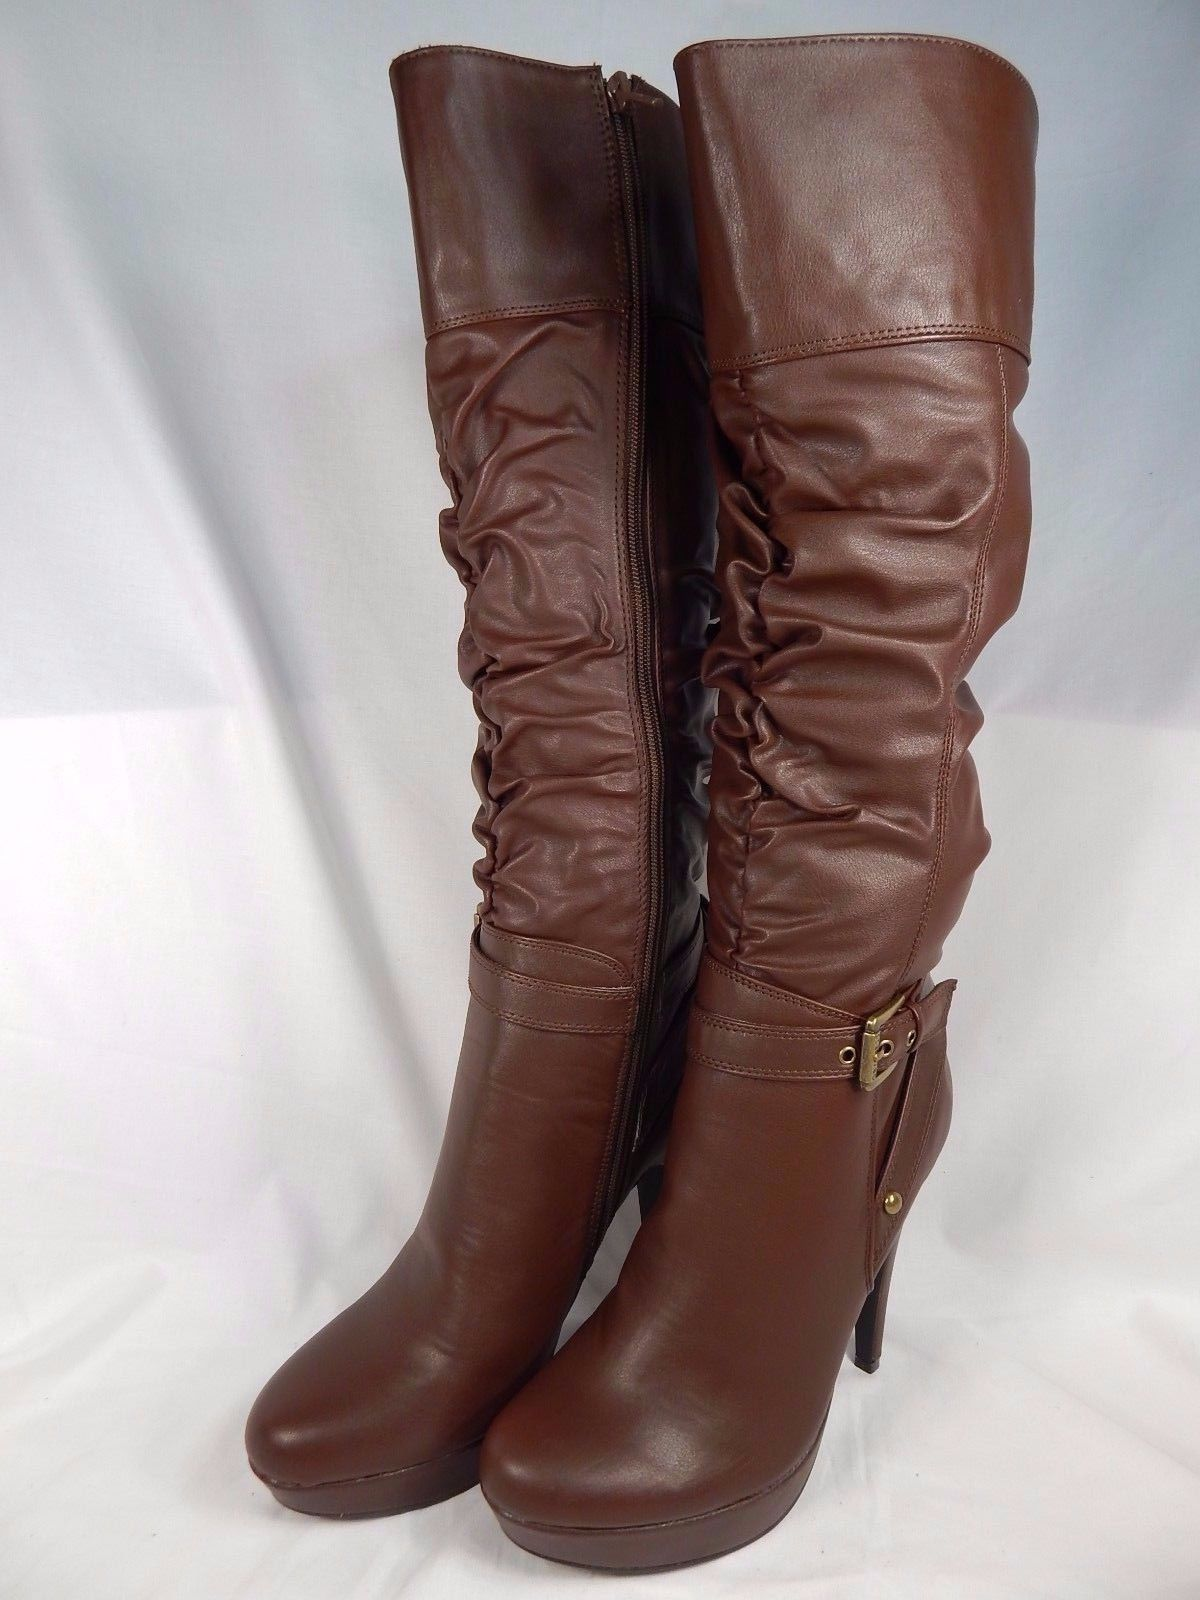 MISMATCH Guess Dorbii Knee High Boots Women's Size US RIGHT 9 WC LEFT 8 M Brown